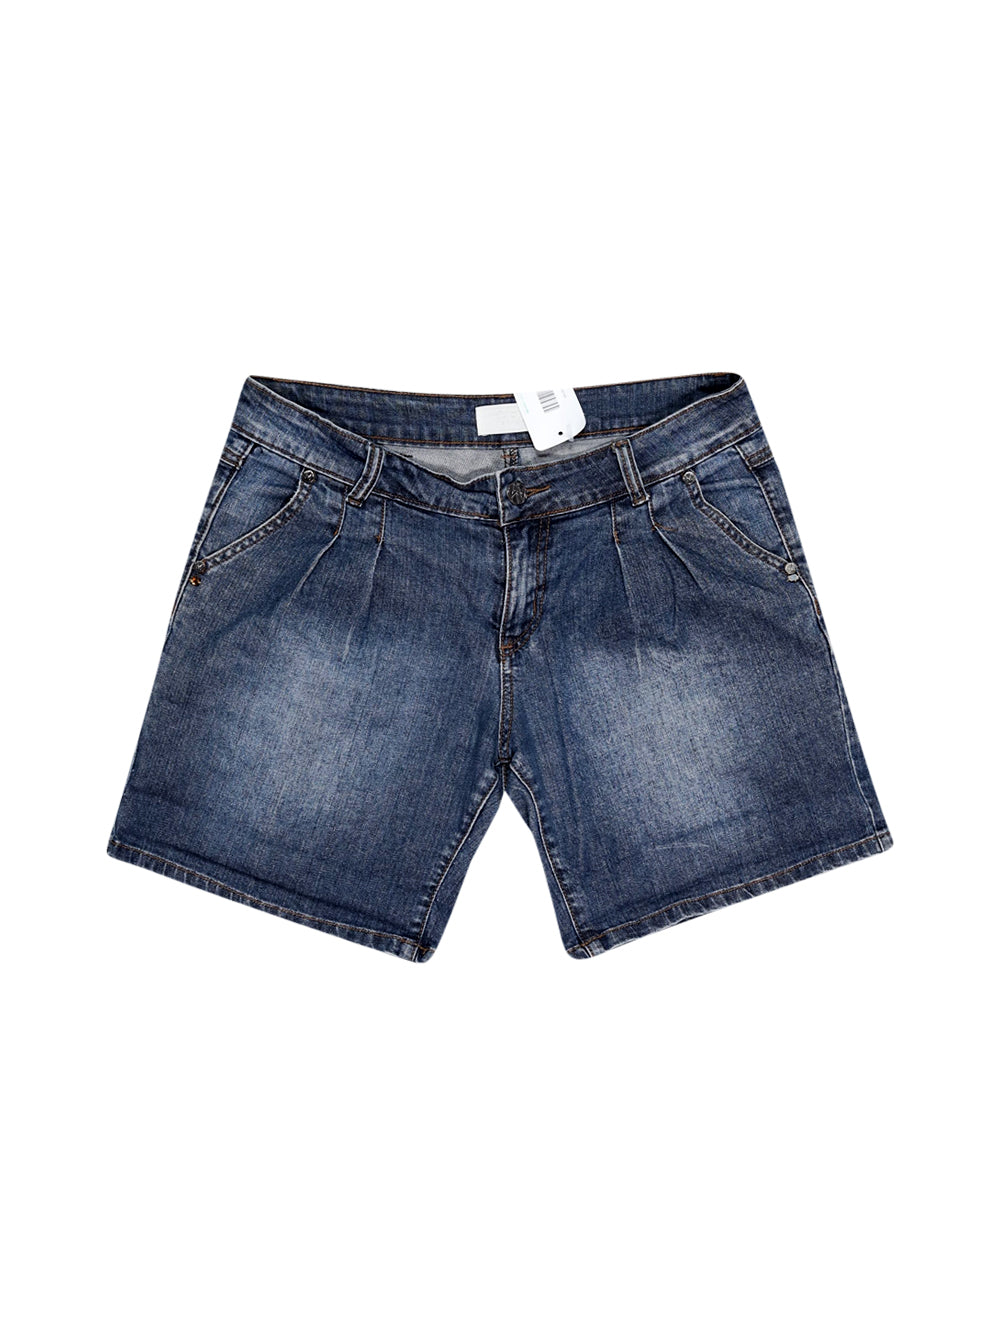 Front photo of Preloved Motivi Blue Woman's shorts - size 10/M